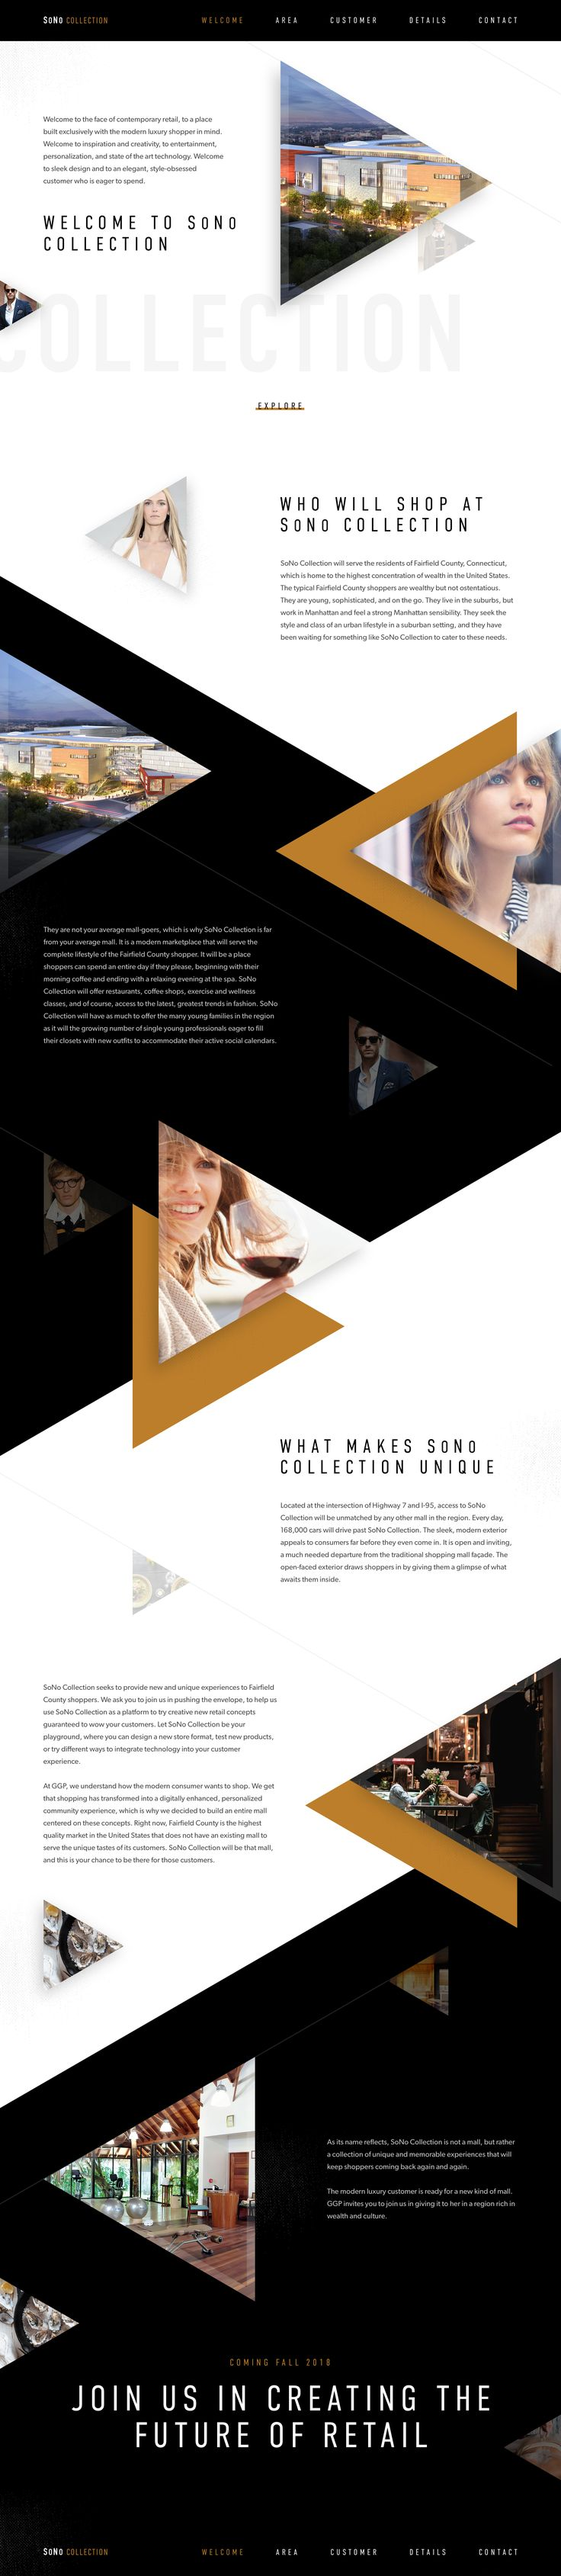 Ui final design concept created for Sono's marketing pitch directed at potential retailers. By Elegant Seagulls.